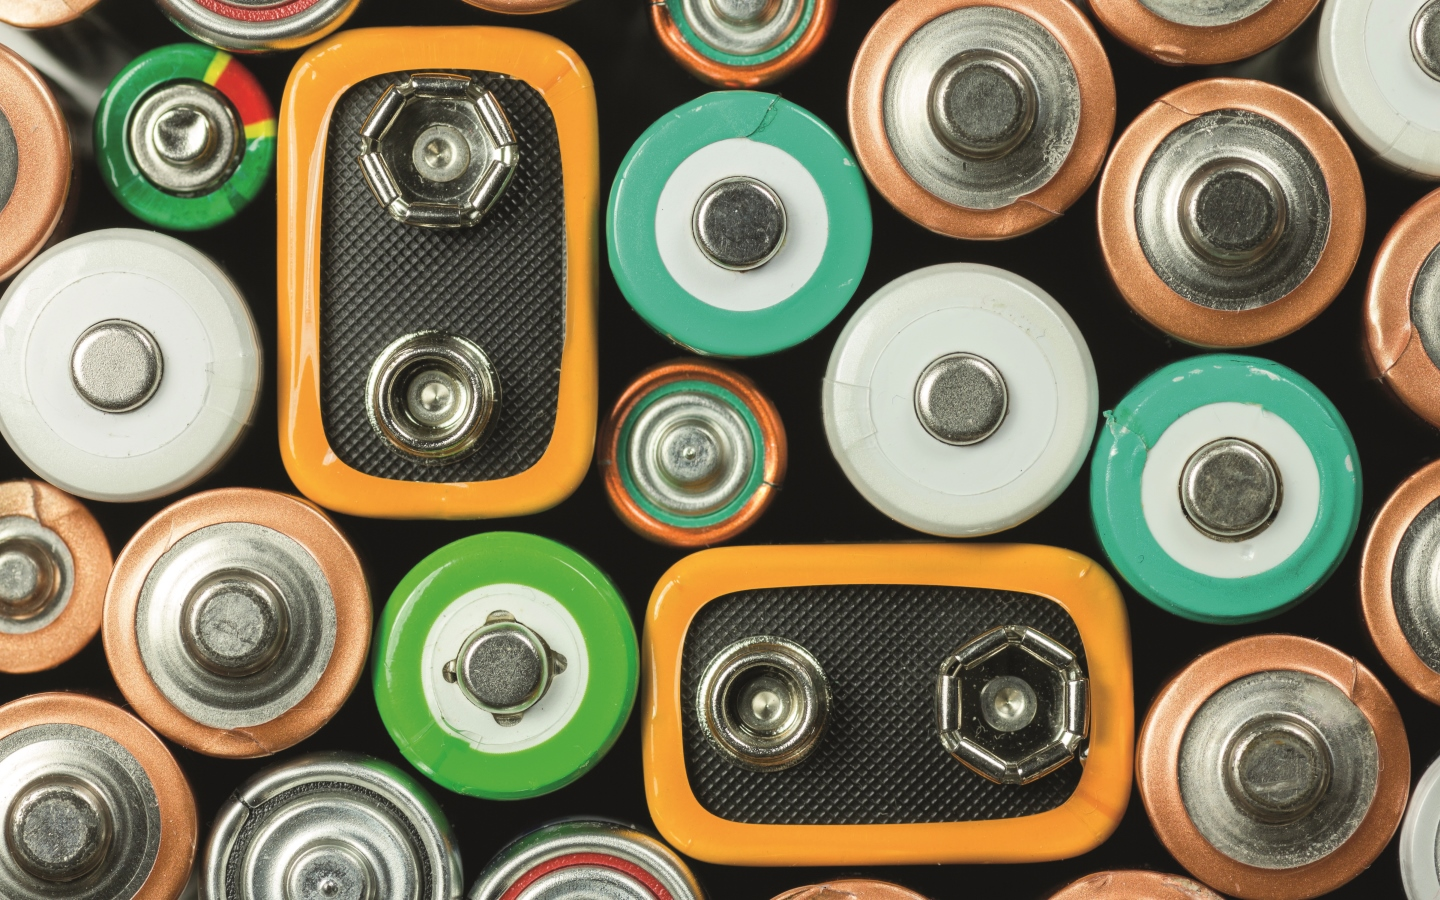 image of various batteries